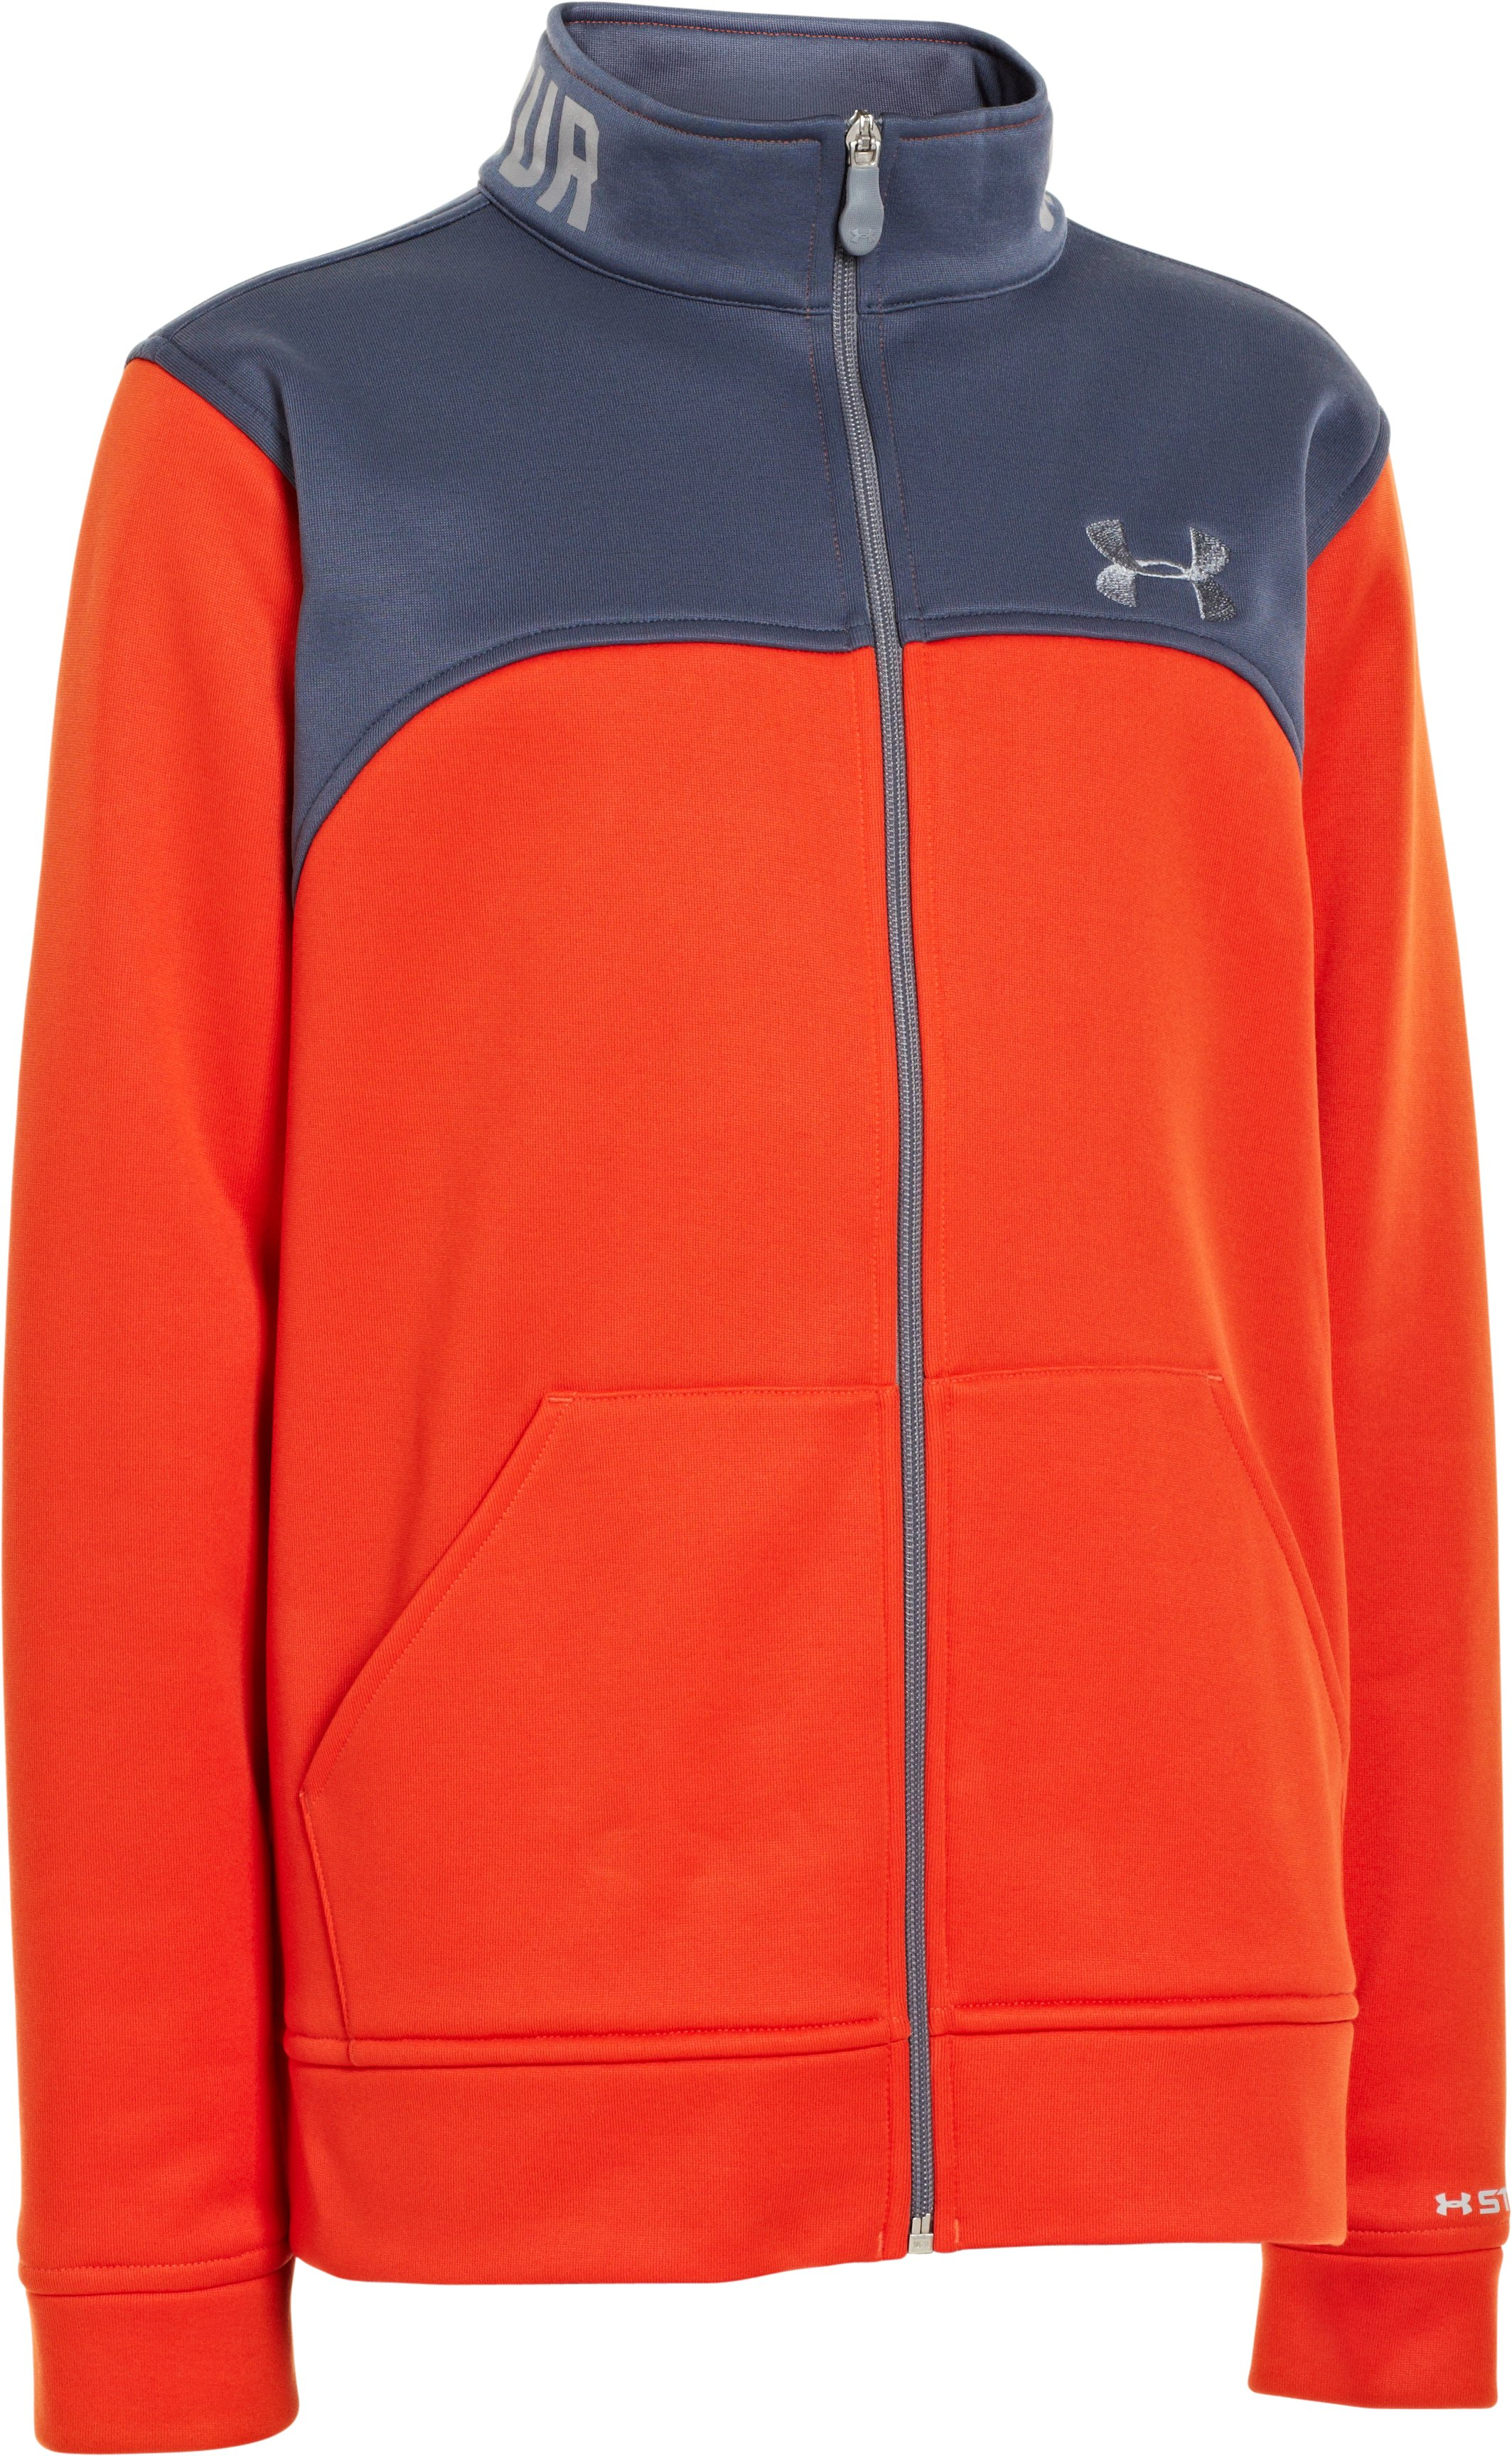 Boys' Armour® Fleece Storm Jacket, Dark Orange, zoomed image